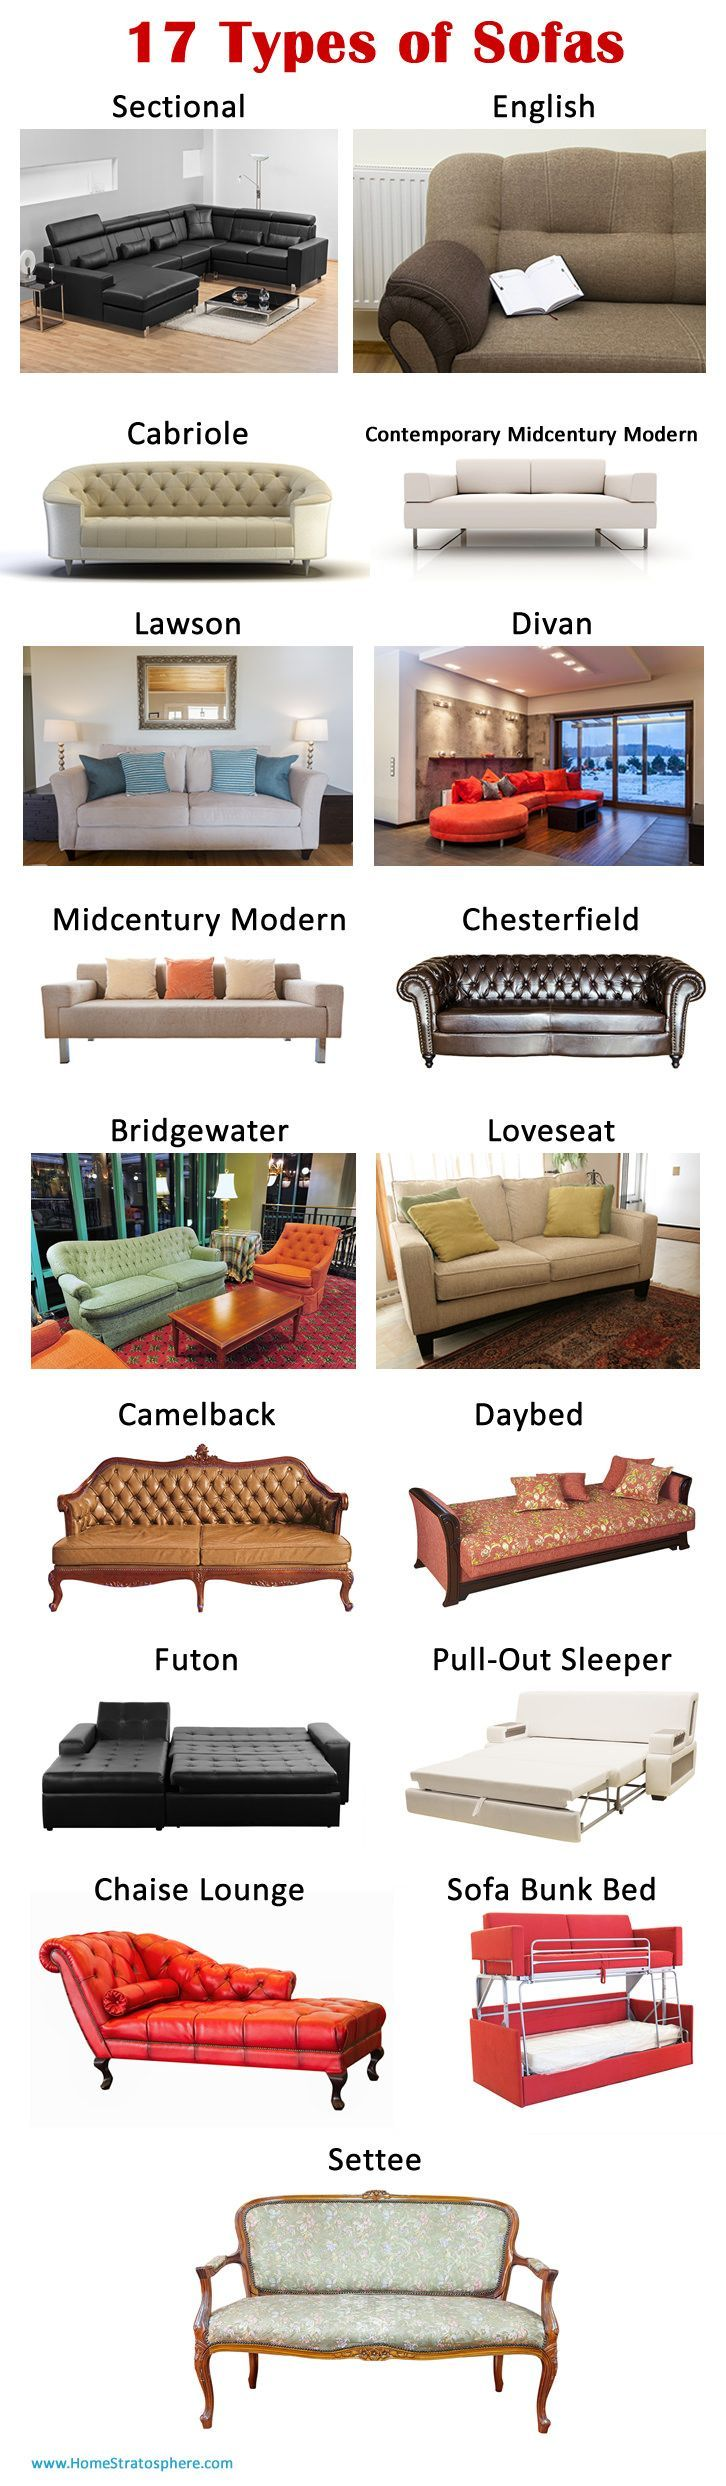 22 Types Of Sofas Couches Explained With Pictures Types Of Sofas Sofa Design Types Of Couches Names of bedroom furniture pieces